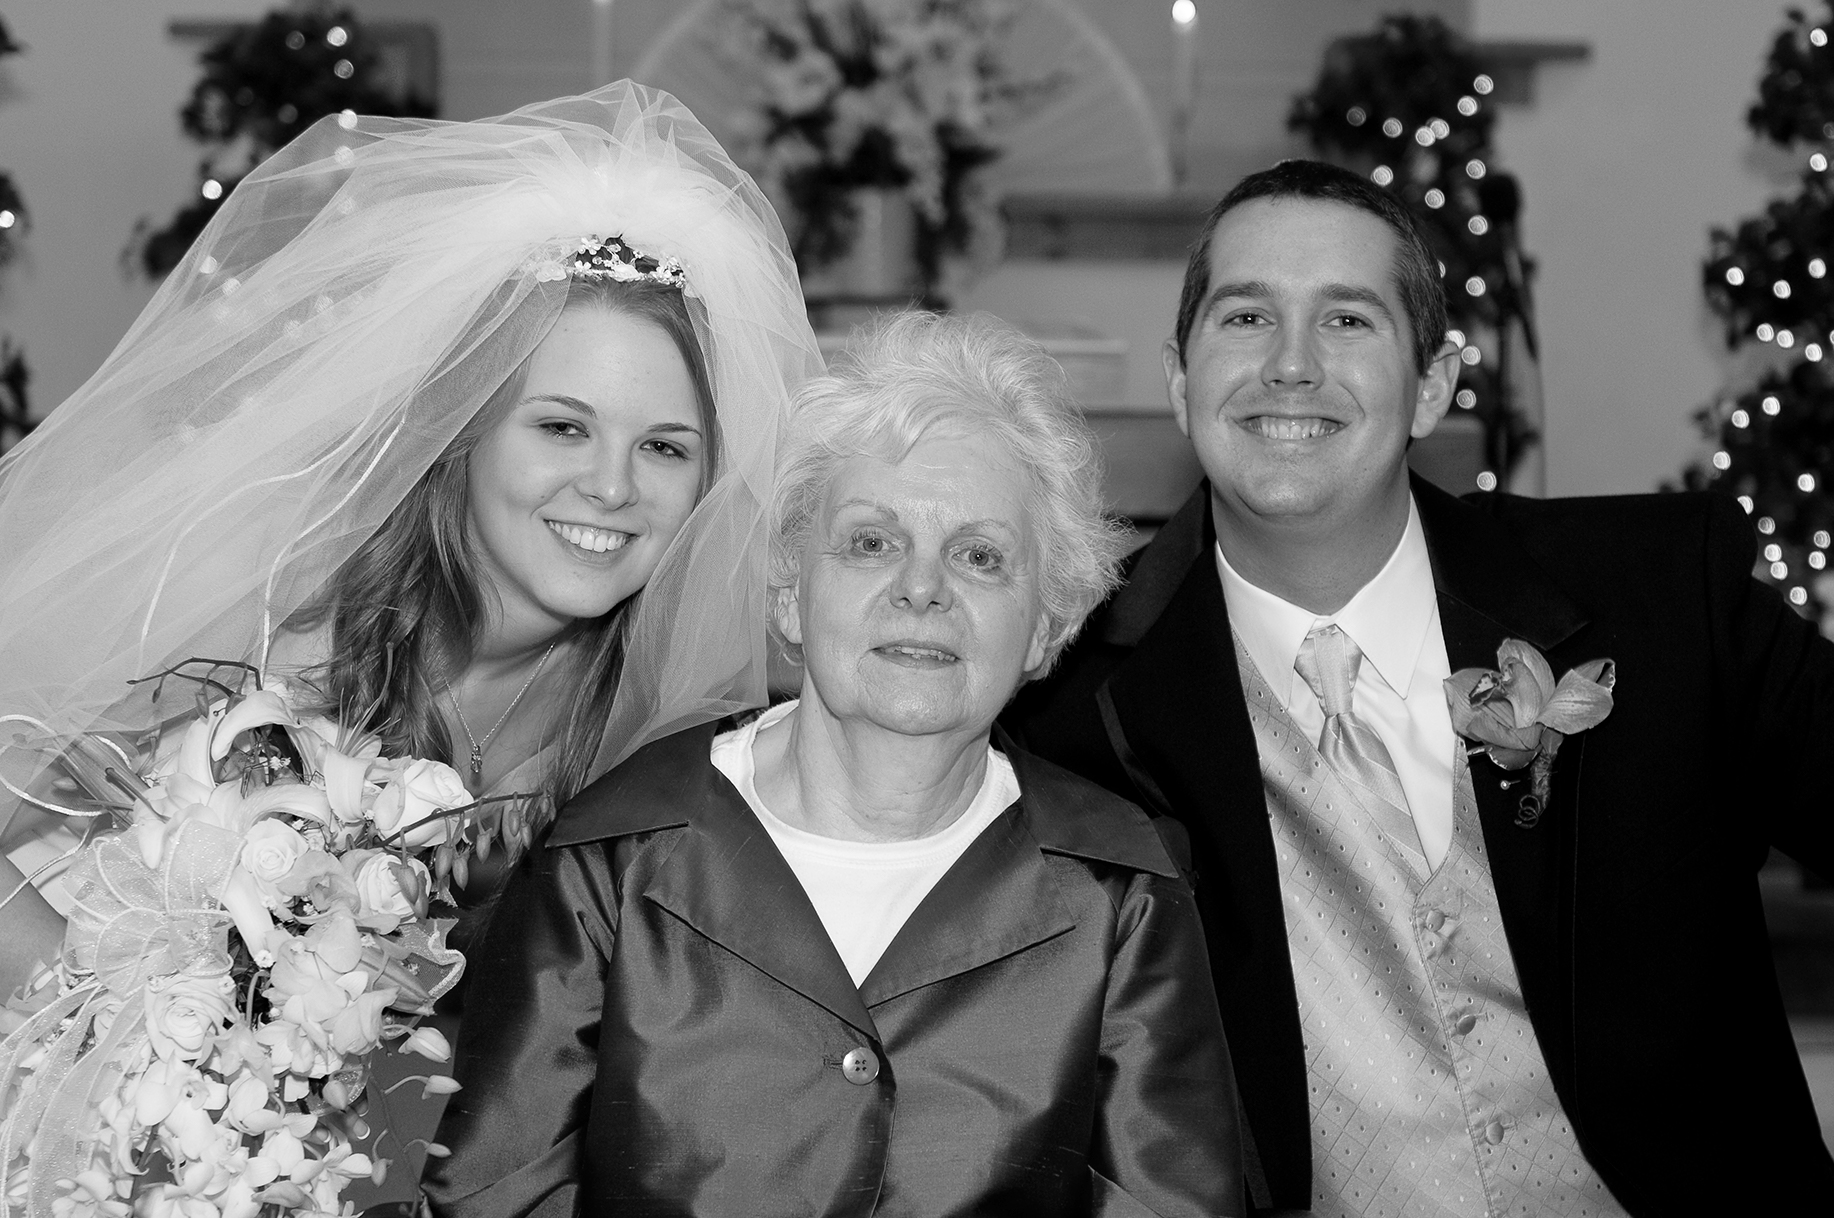 Diane with her granddaughter, Caitlyn, and grandson-in-law, Andrew, at their wedding in 2009